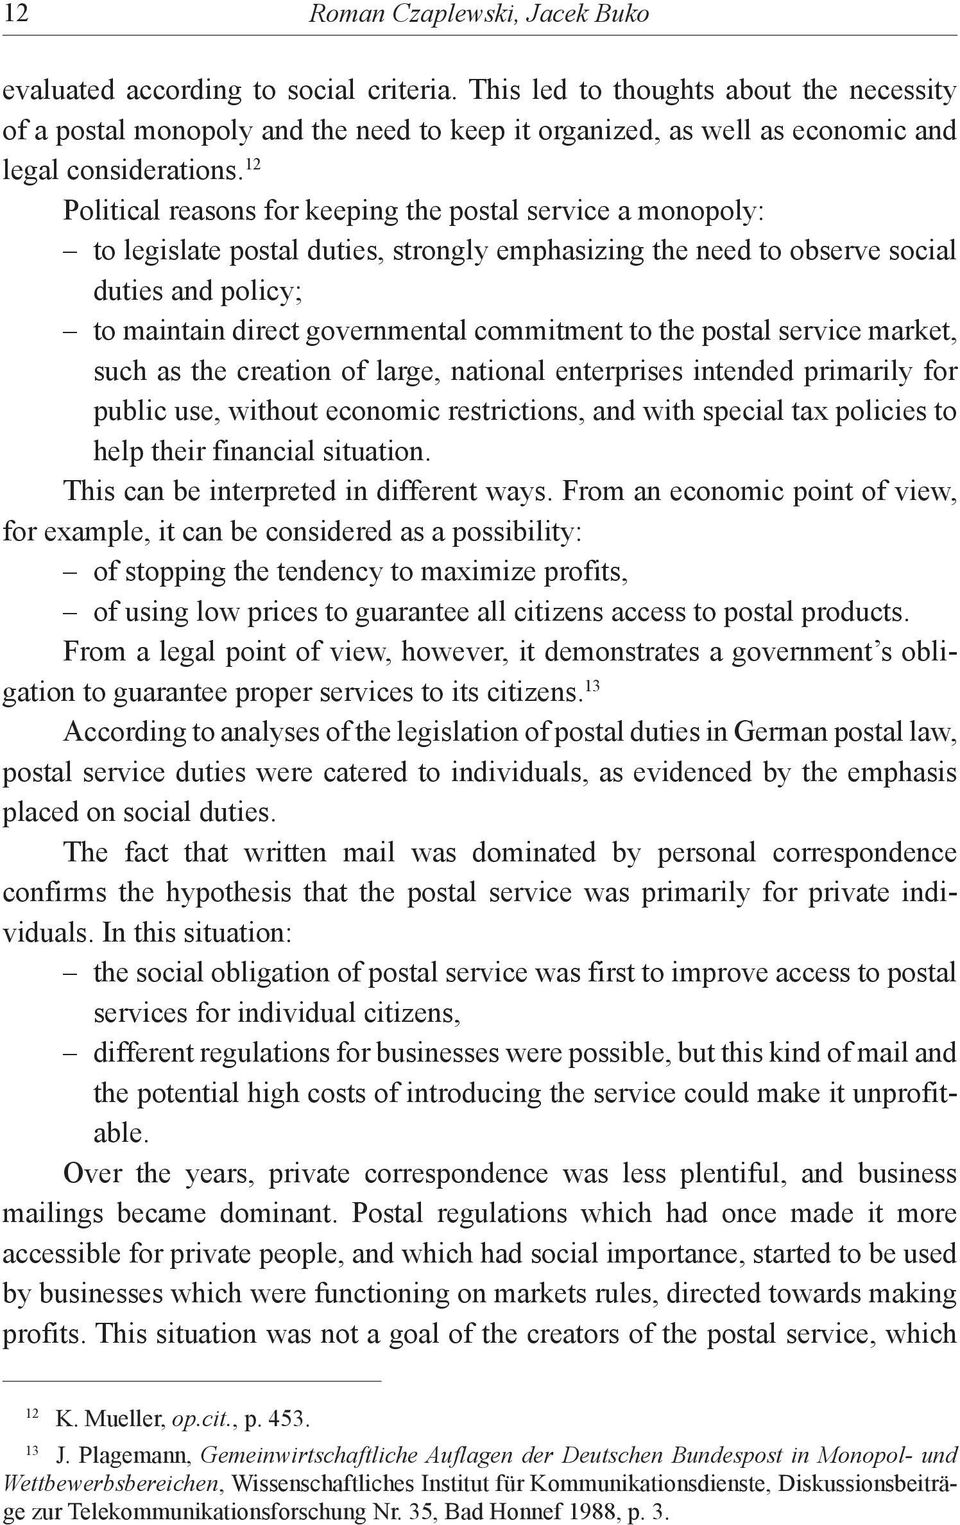 12 Political reasons for keeping the postal service a monopoly: to legislate postal duties, strongly emphasizing the need to observe social duties and policy; to maintain direct governmental